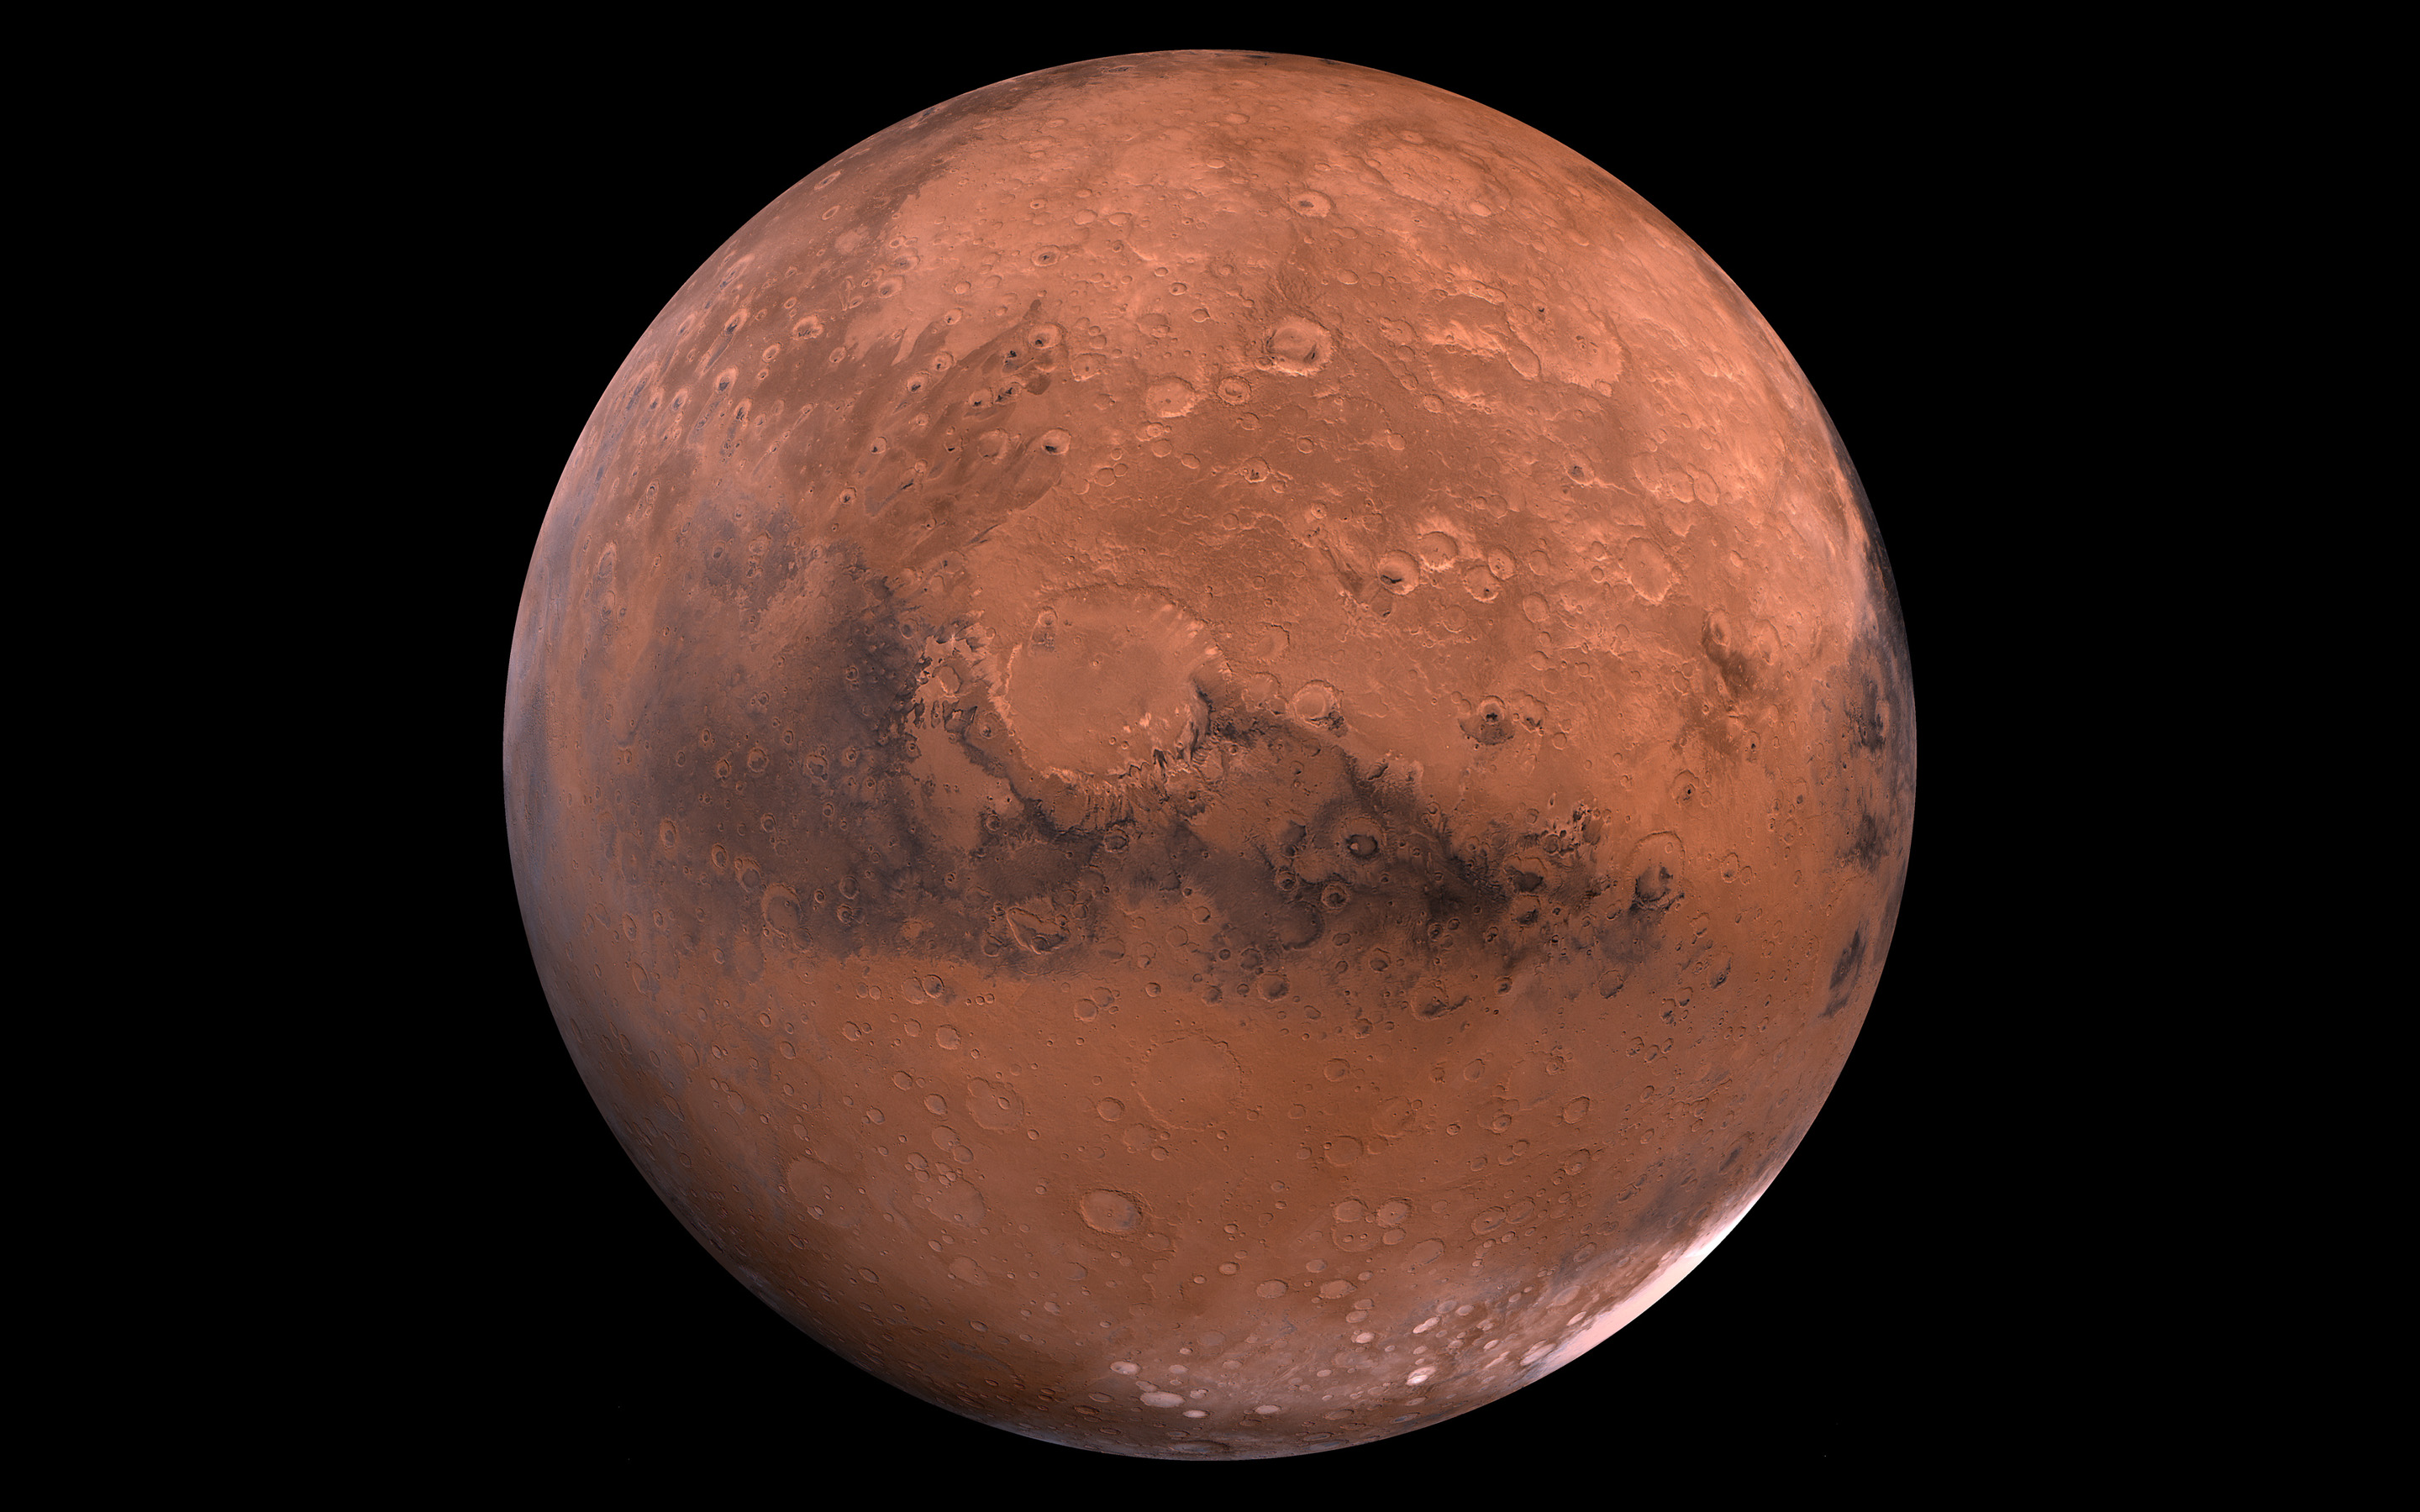 mars planet wallpaper 2880x1800 45511 wallpaperup